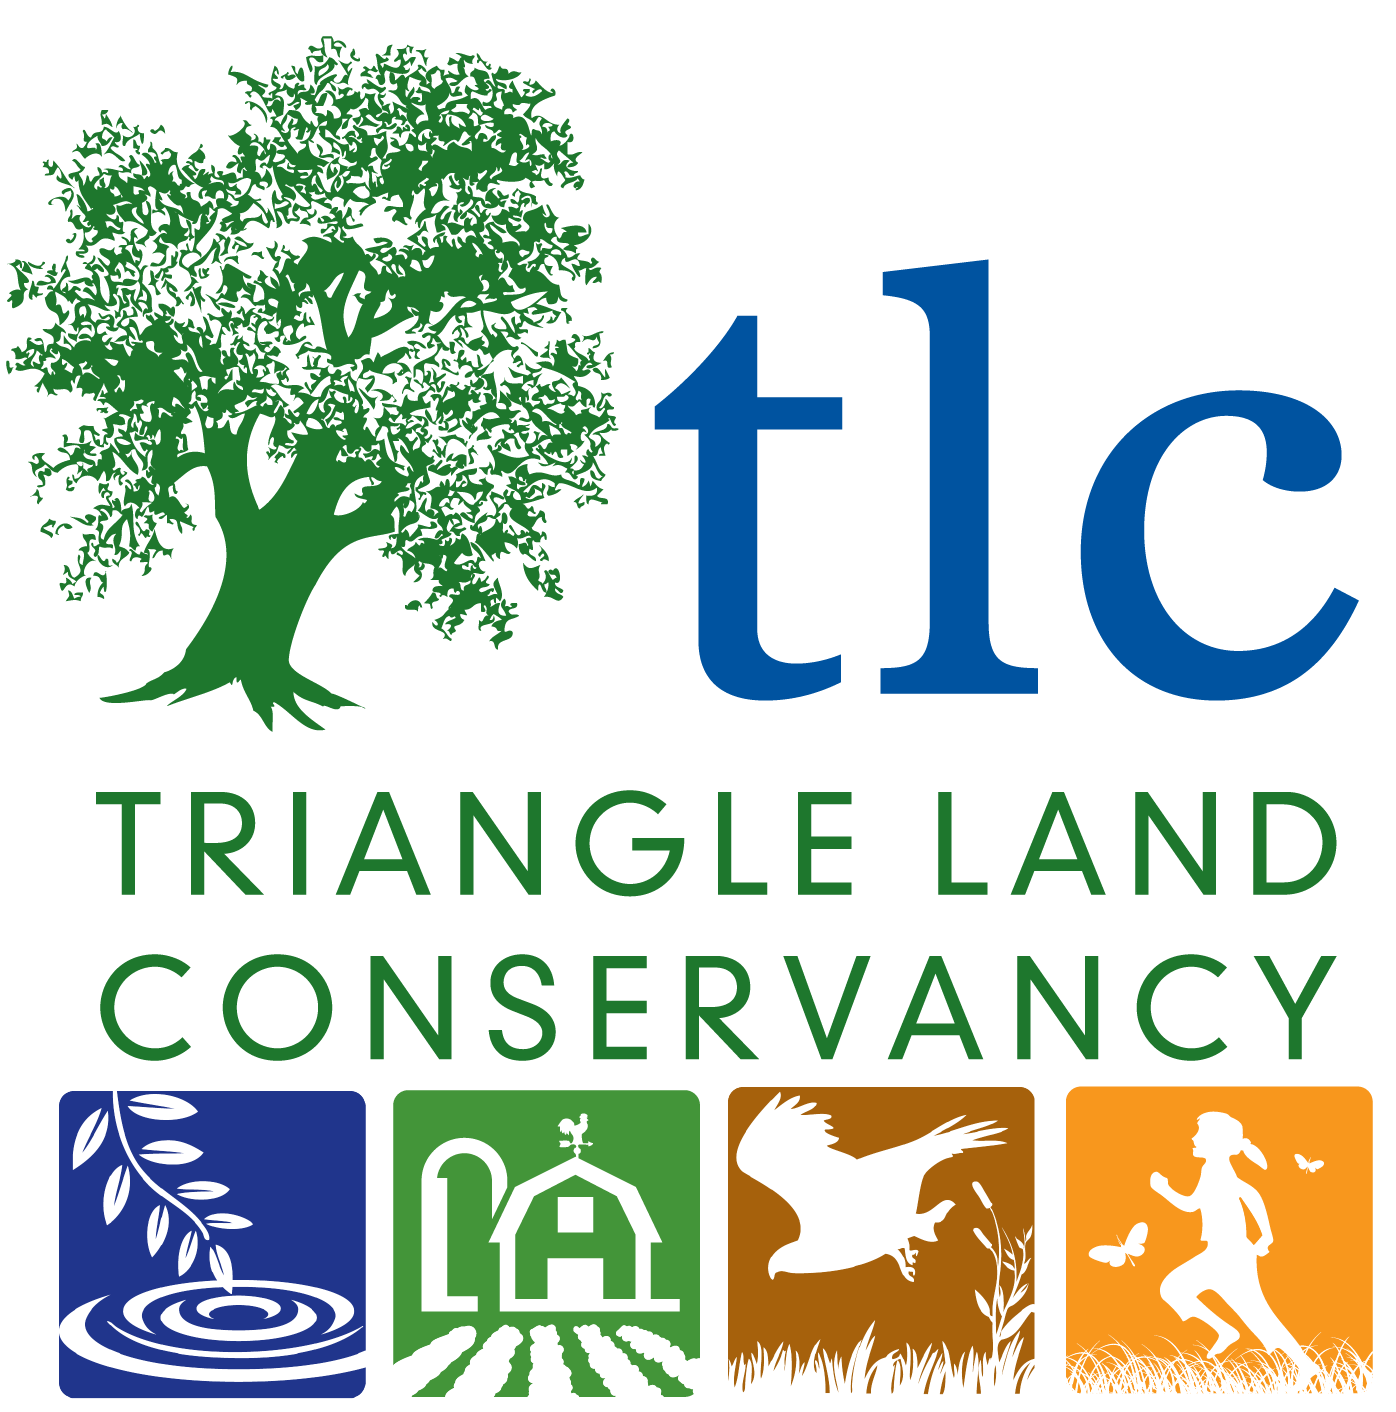 Things to Do Outside with TLC Preserves - Triangle Land Conservancy